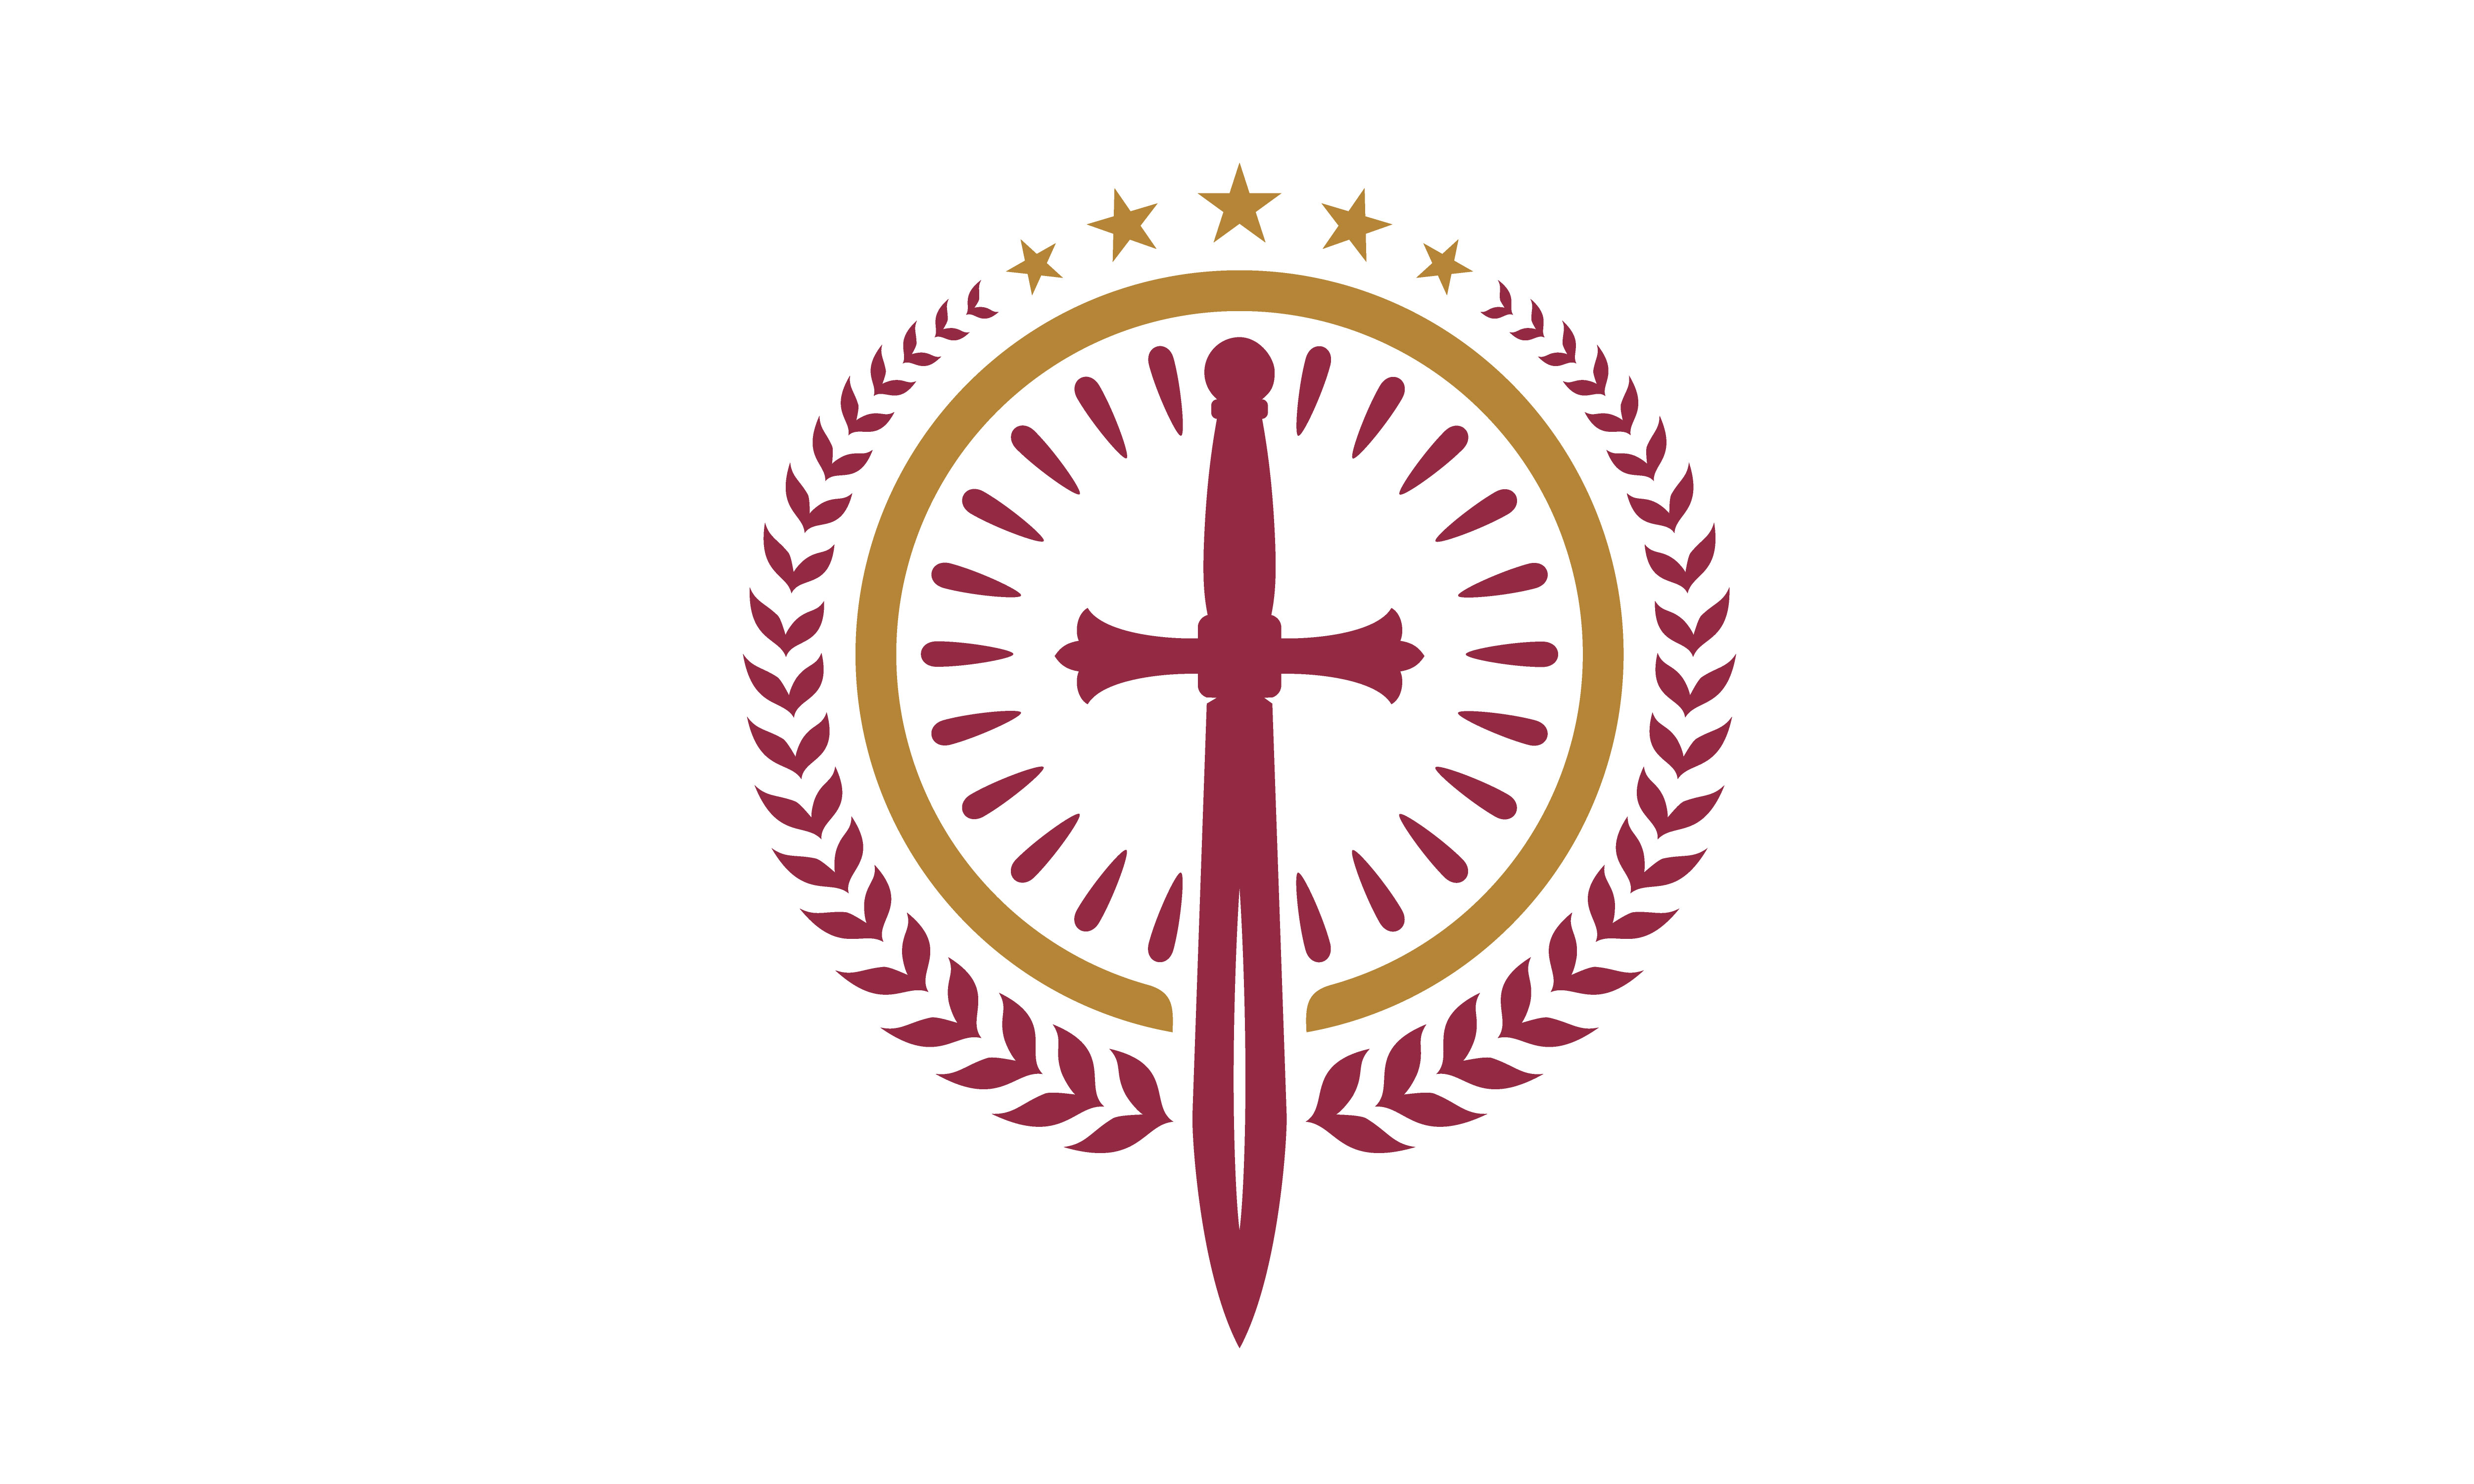 Download Free Catholic Christian Sword Blade Logo Graphic By Enola99d for Cricut Explore, Silhouette and other cutting machines.